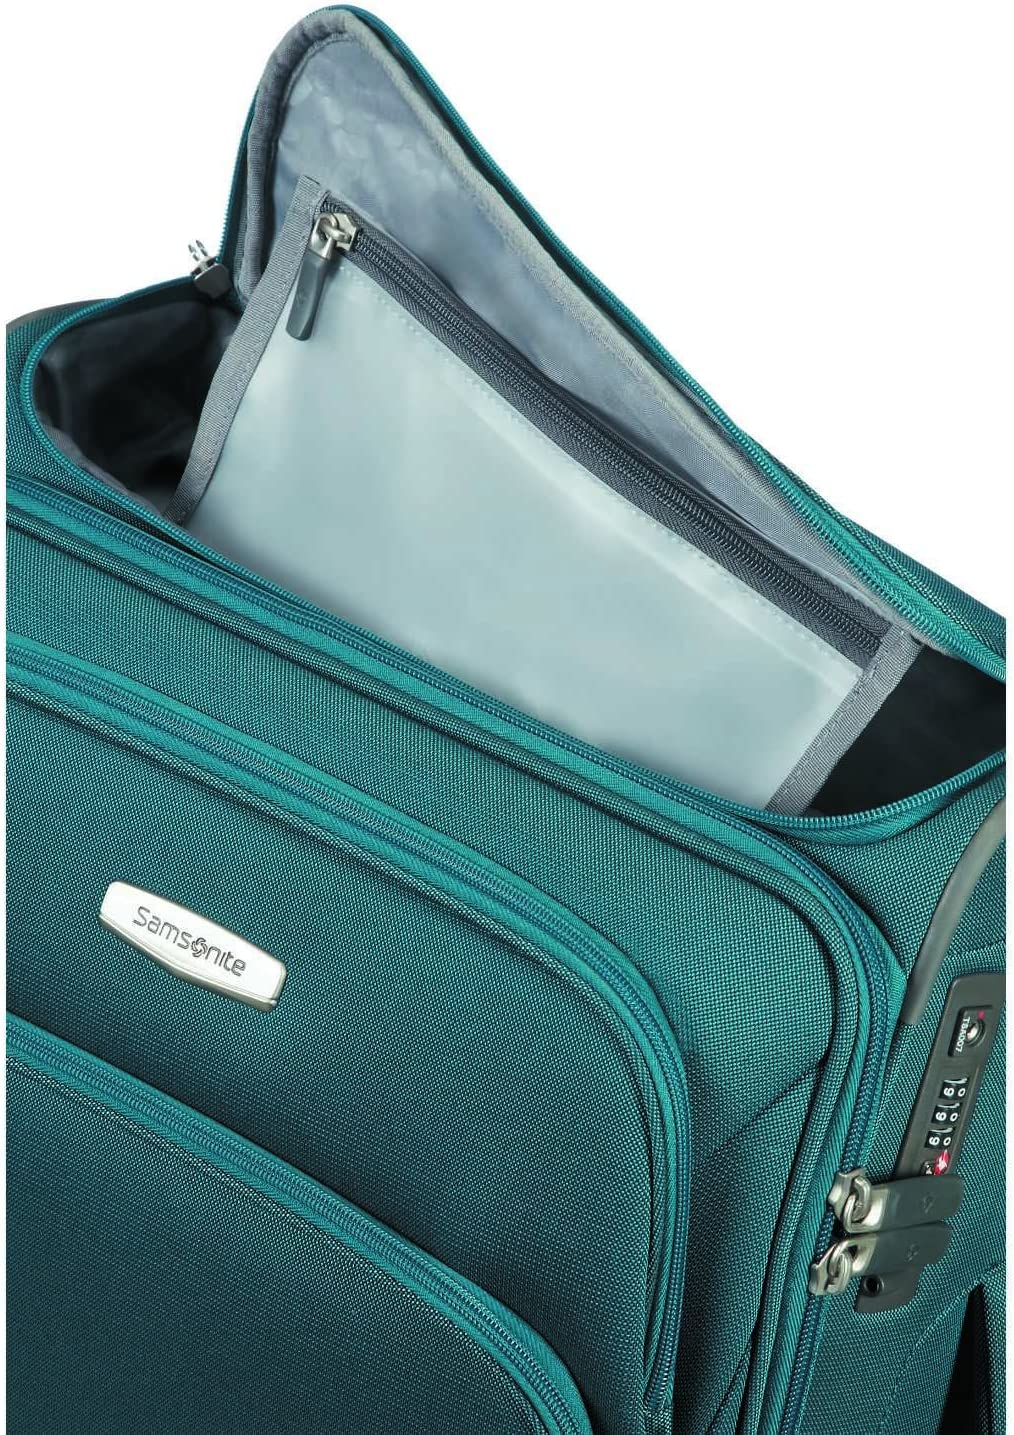 Spinner 55//20 with SmartTop Hand Luggage 55 cm 43 liters Blue SAMSONITE Spark SNG Petrol Blue